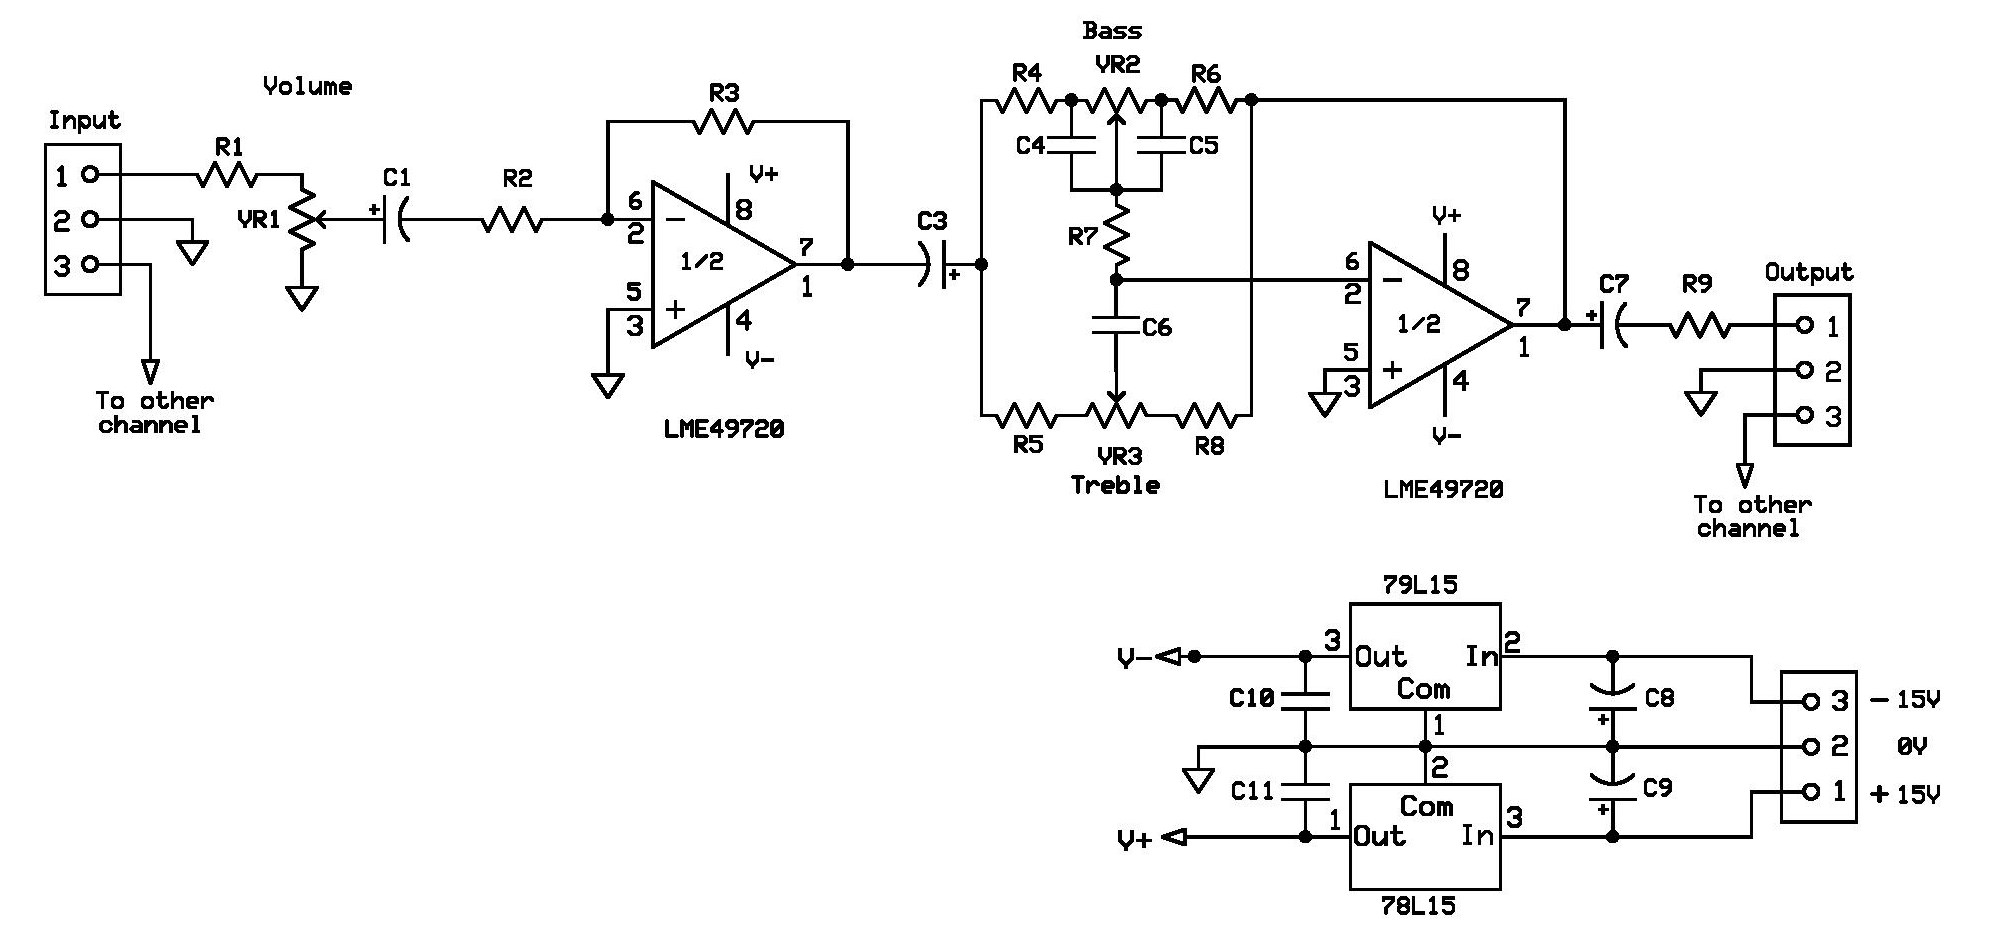 Bass And Treble Control Circuit Diagram For Headphone Amplifier From Redcircuits